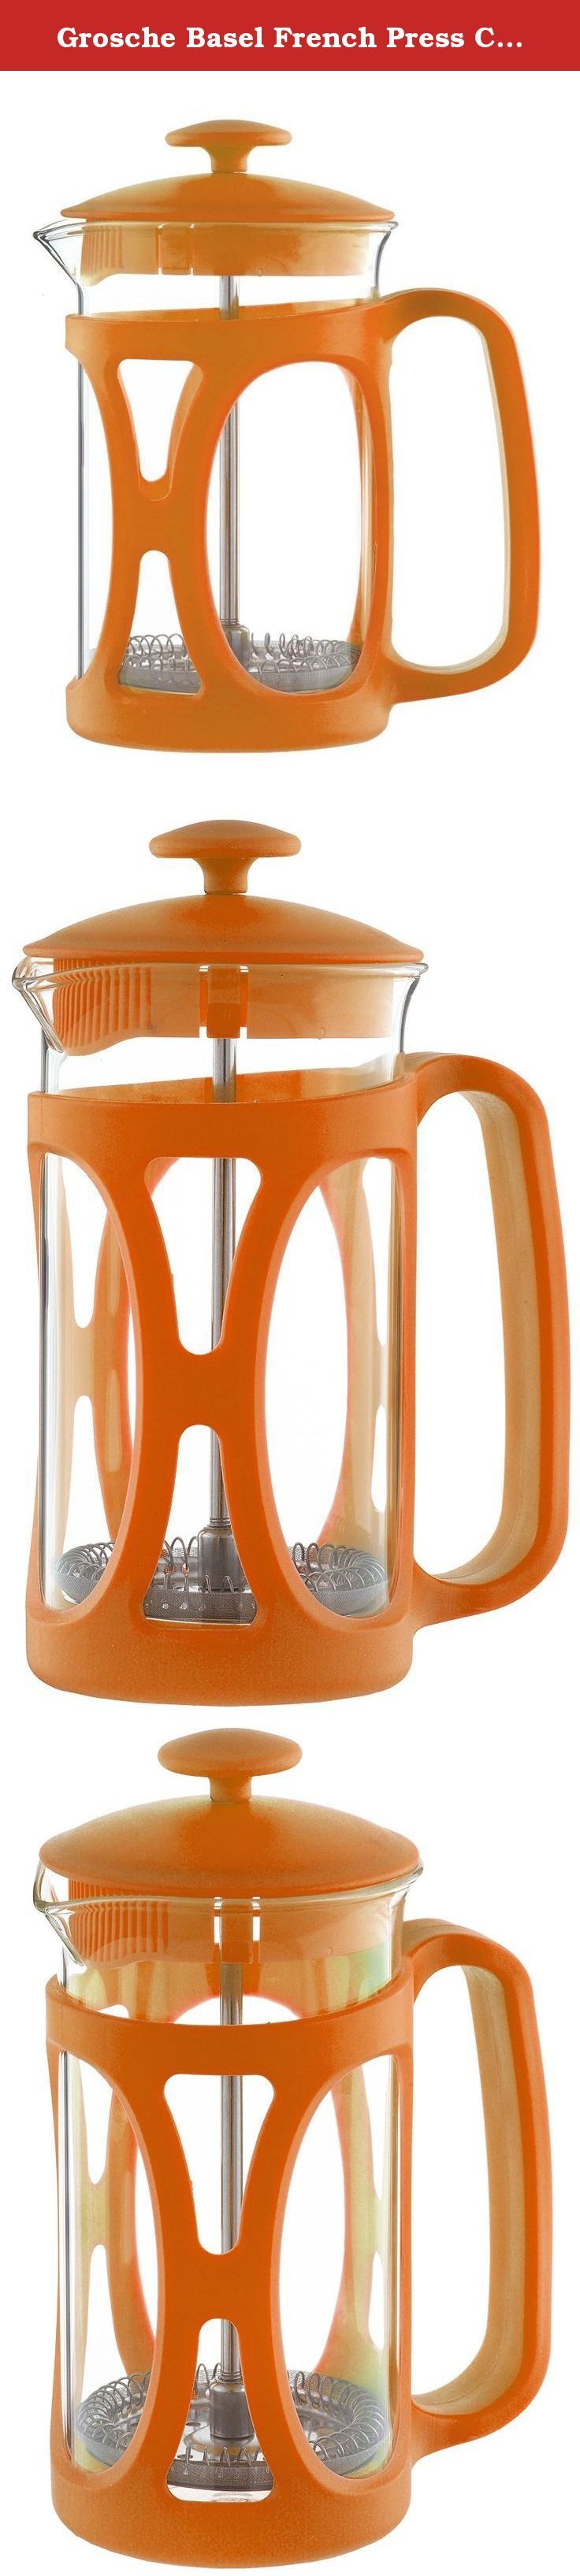 Grosche Basel French Press Coffee and Tea Maker (Large - 800 ml, Orange). THE BASEL FRENCH PRESS IN LOTS OF GREAT COLORS! This French Press Brews the tastiest coffee and tea and gives a bold and fun look and presence to your table top. That's the BASEL French press coffee and tea maker by GROSCHE. A uniquely designed and crafted French Press with fine Stainless Steel 3 Plate Filter Press System makes for a wonderful coffee and tea making experience. WHAT IS A FRENCH PRESS? Commonly known…